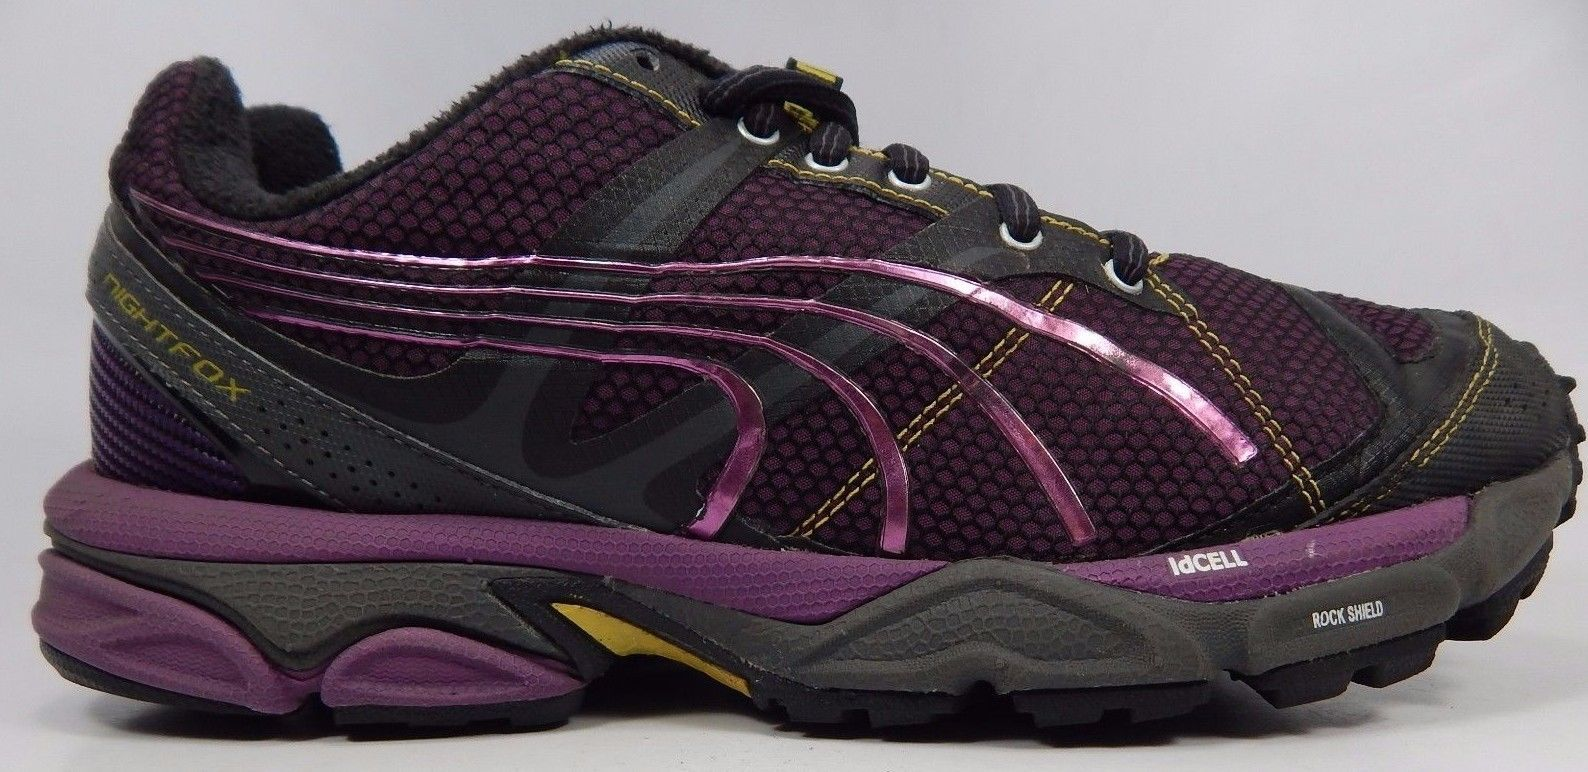 Puma NightFox TR Women's Trail Running Shoes Size US 9 M (B) EU 40 Black Purple